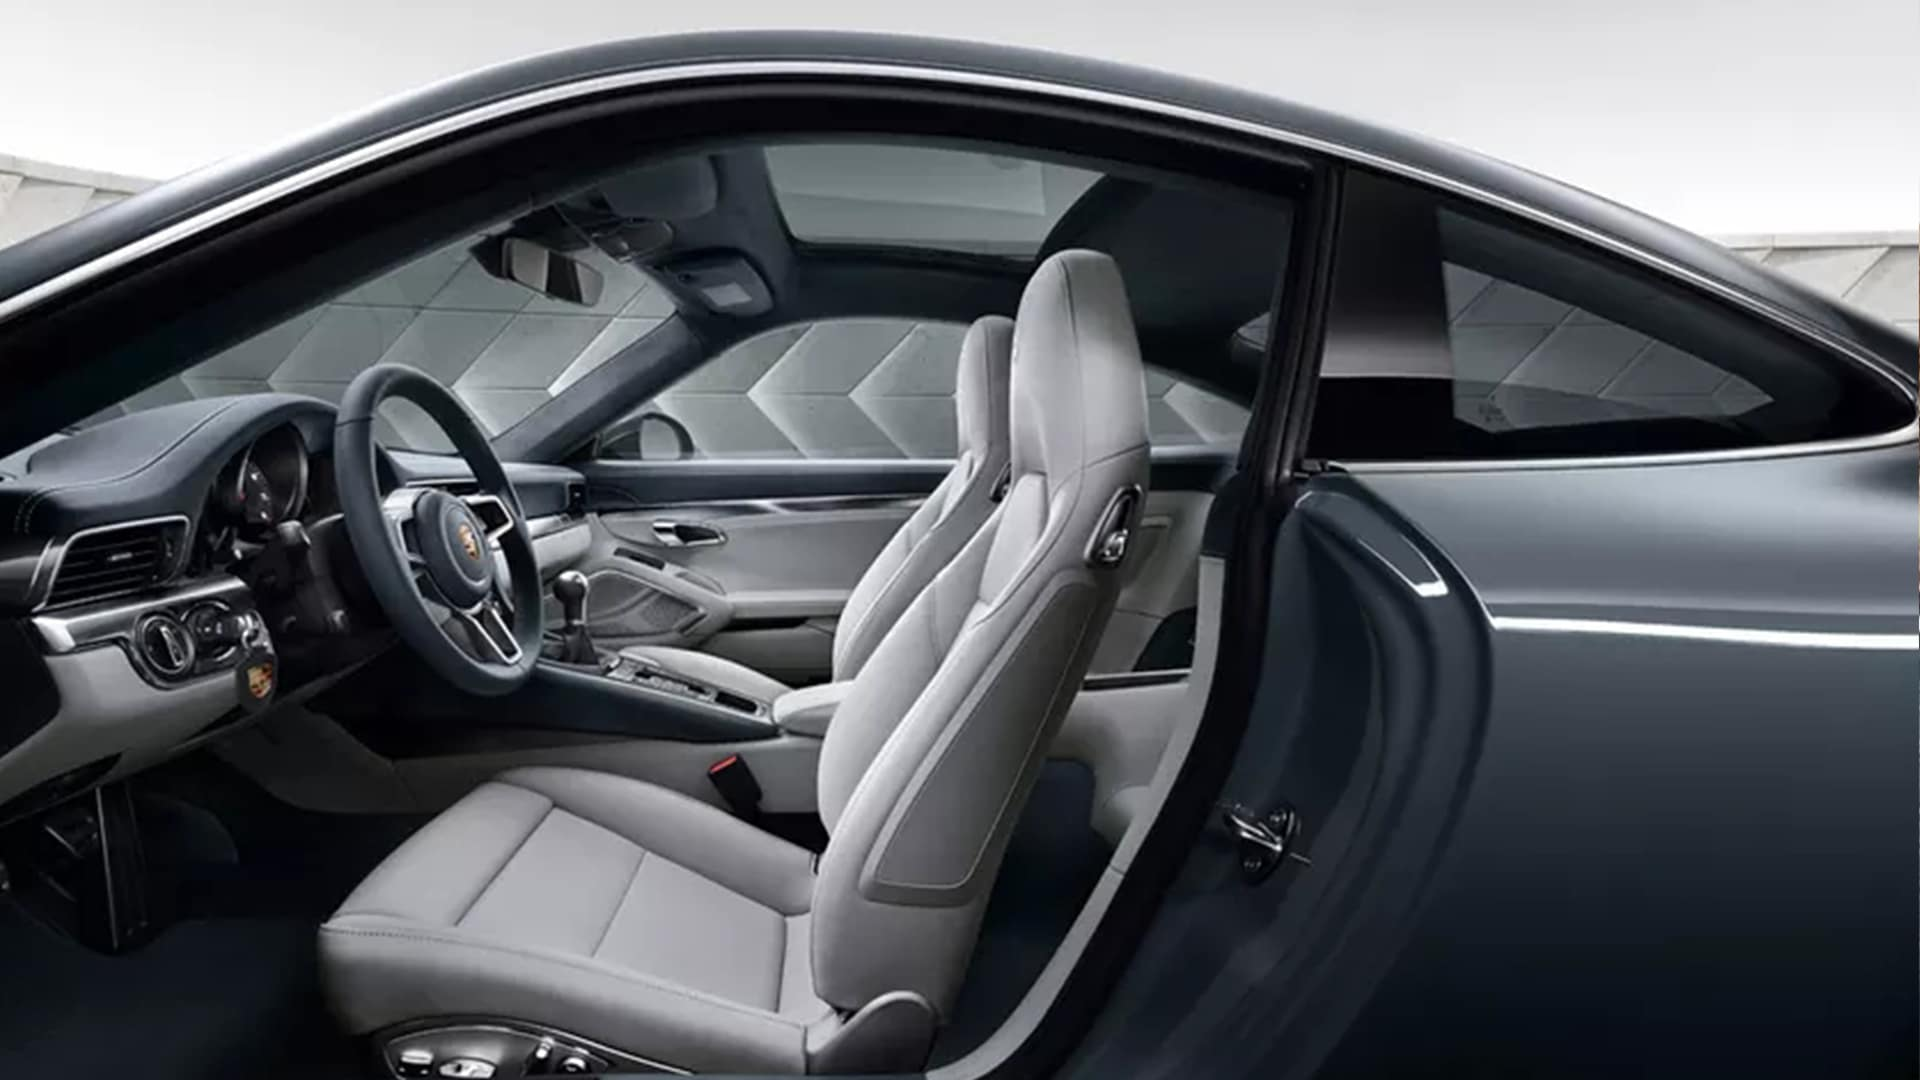 2020 Porsche 911 Carrera Interior